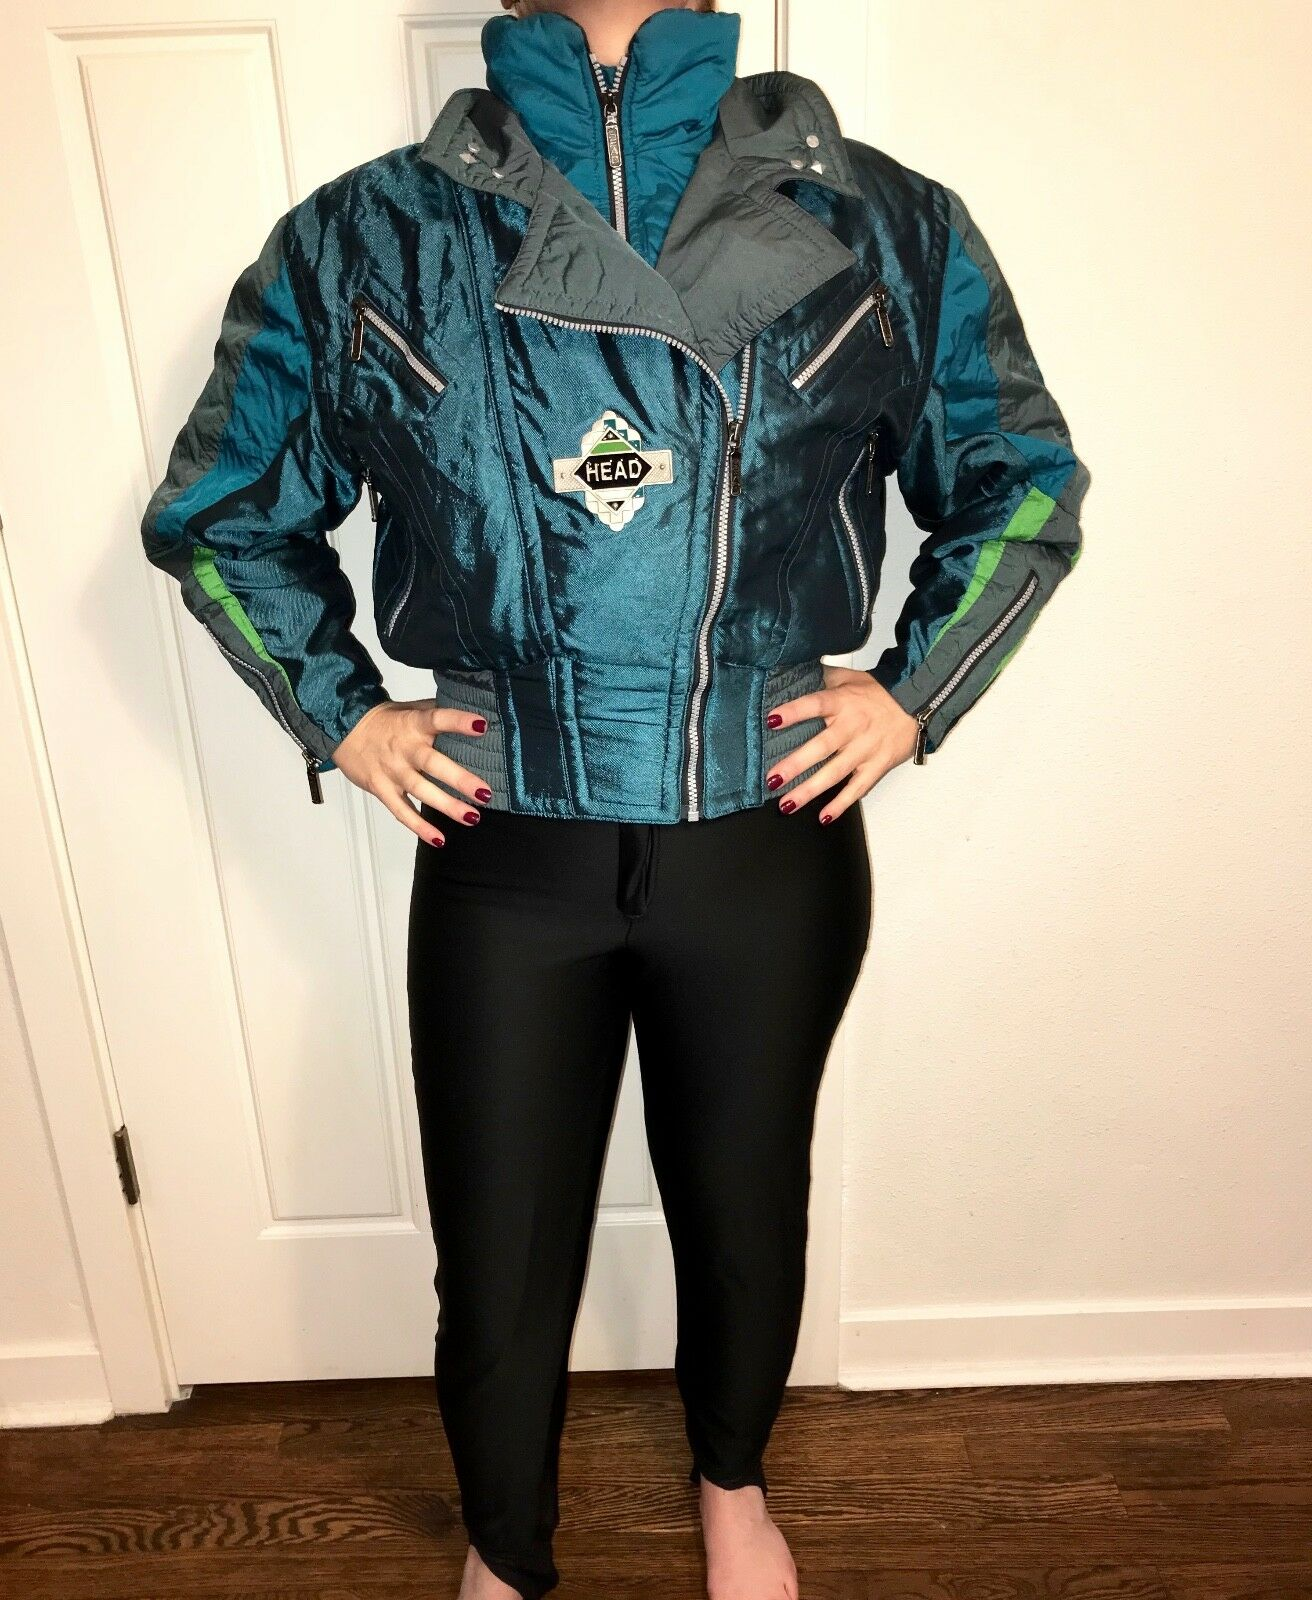 Vtg 80s 90s One Piece HEAD Iridescent Damenschuhe SKI SUIT Apres Apres SUIT Snow Bib Snowsuit 6 effce7